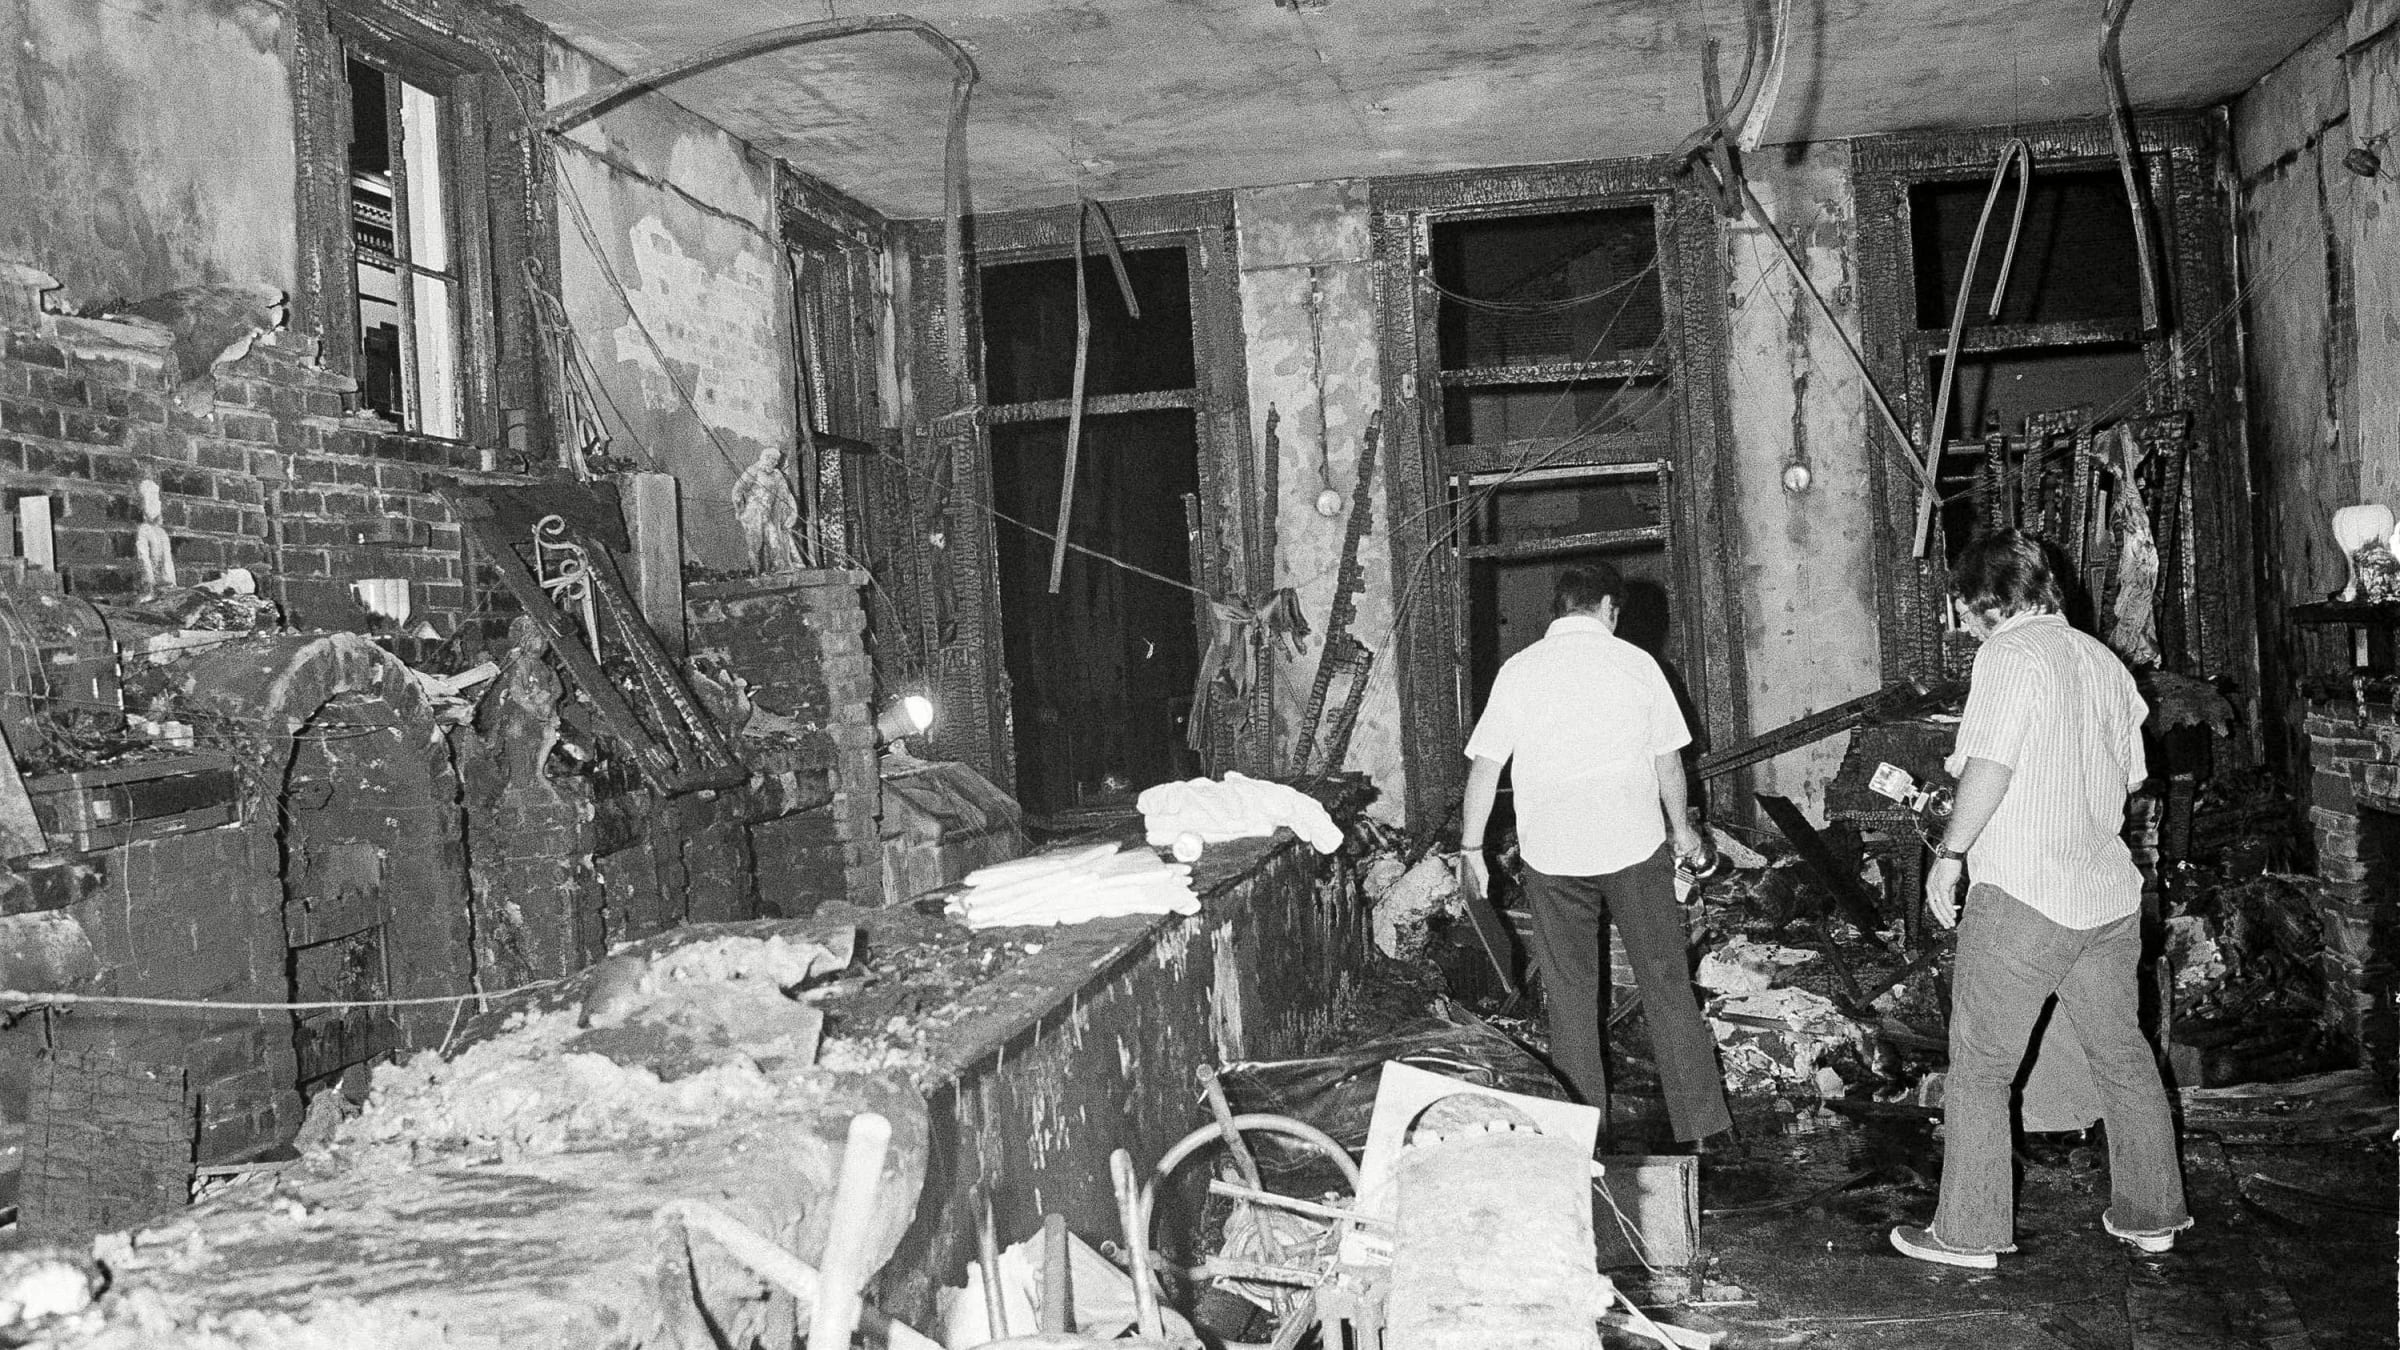 The UpStairs Lounge Fire Killed 32 People  Its Legacy Still